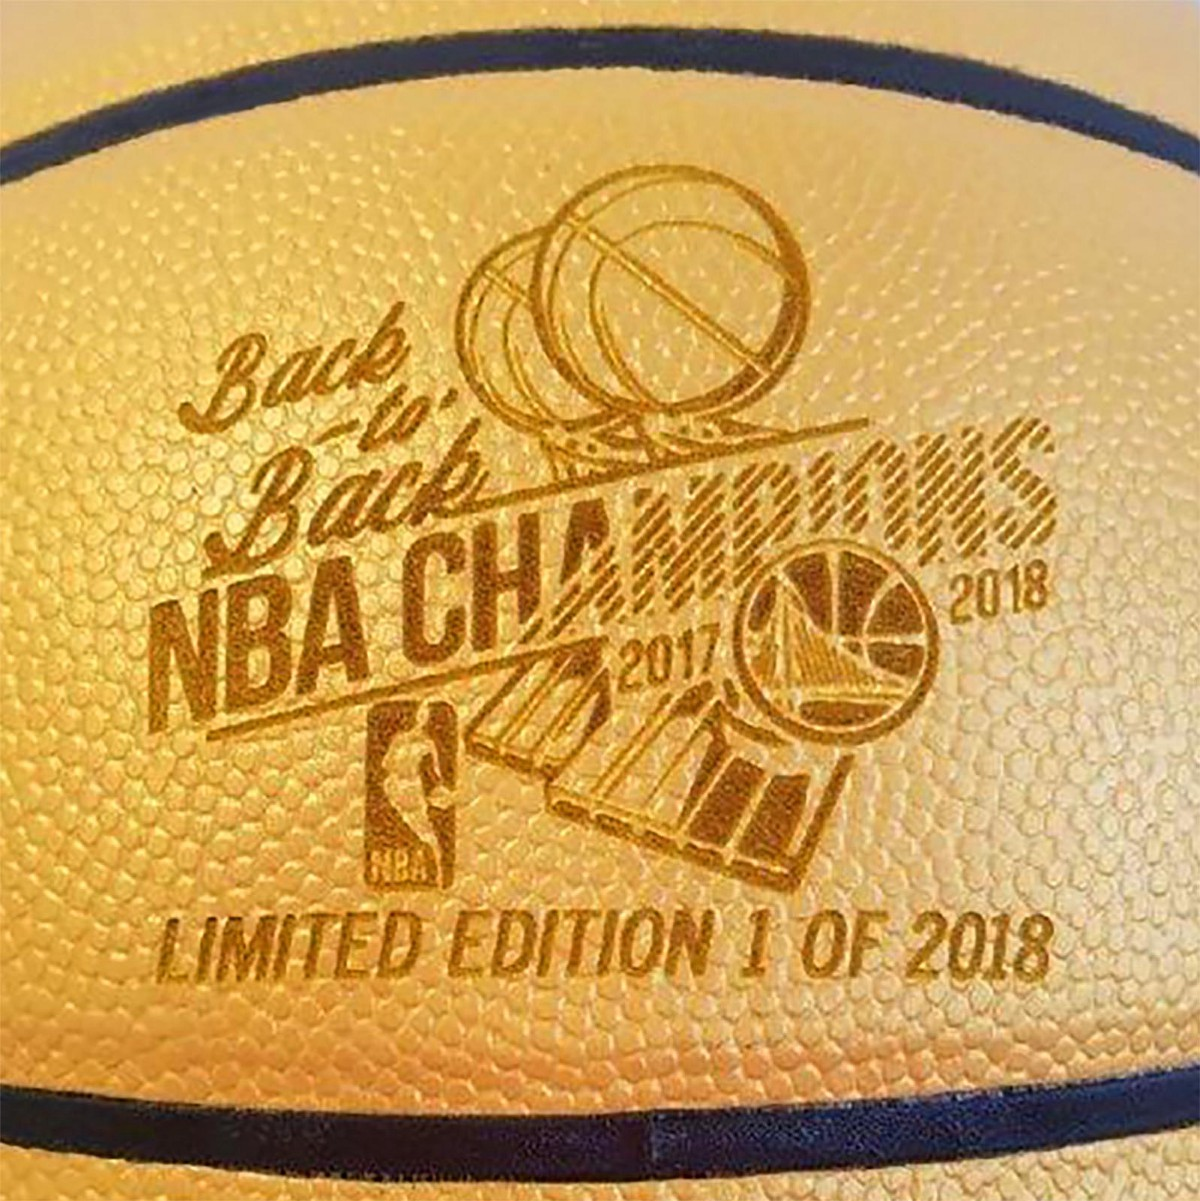 00ff4429b73 Spalding Drops Limited Edition Golden State Warriors 2018 NBA Championship  Balls